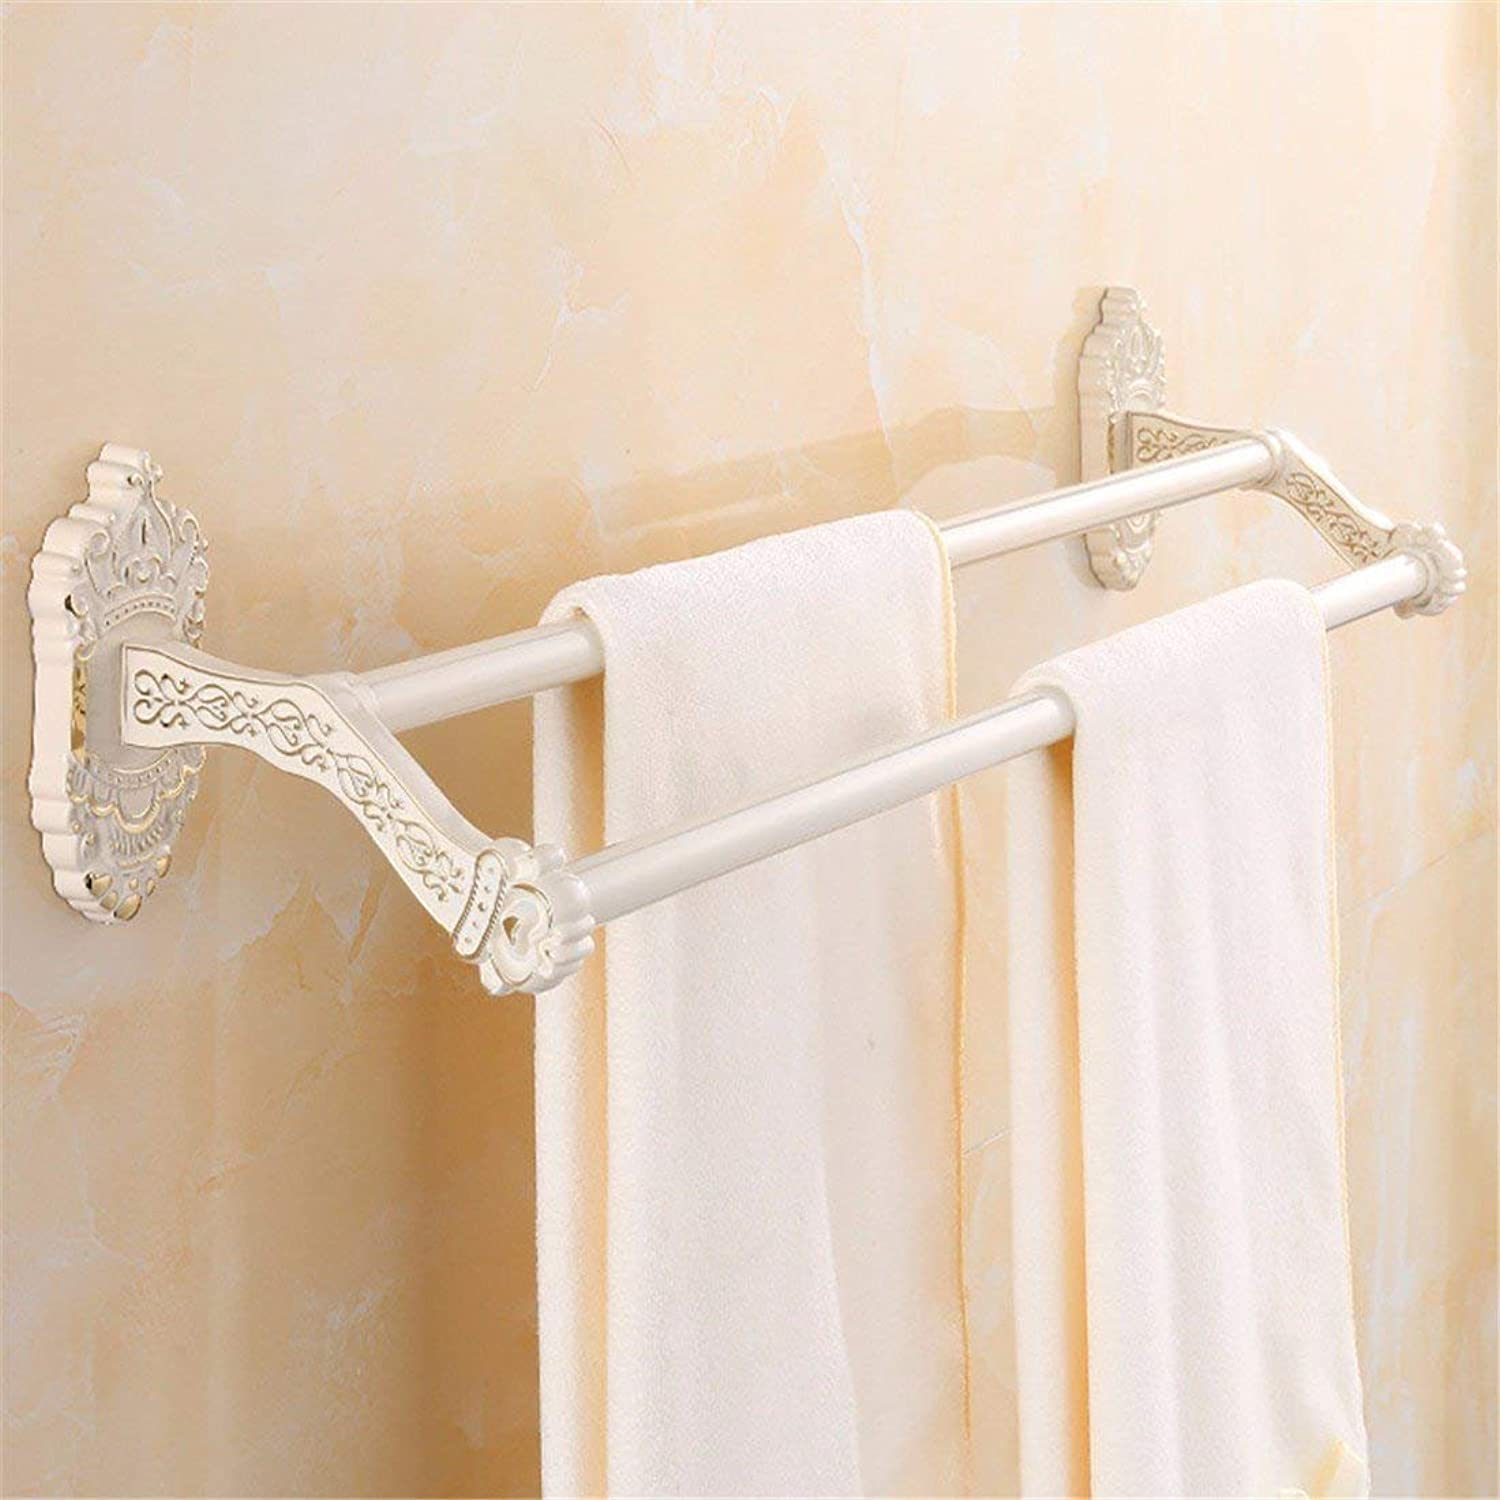 European Retro gold and White Costume Accessories of Baths Dry-Towels,Pole Folding Double